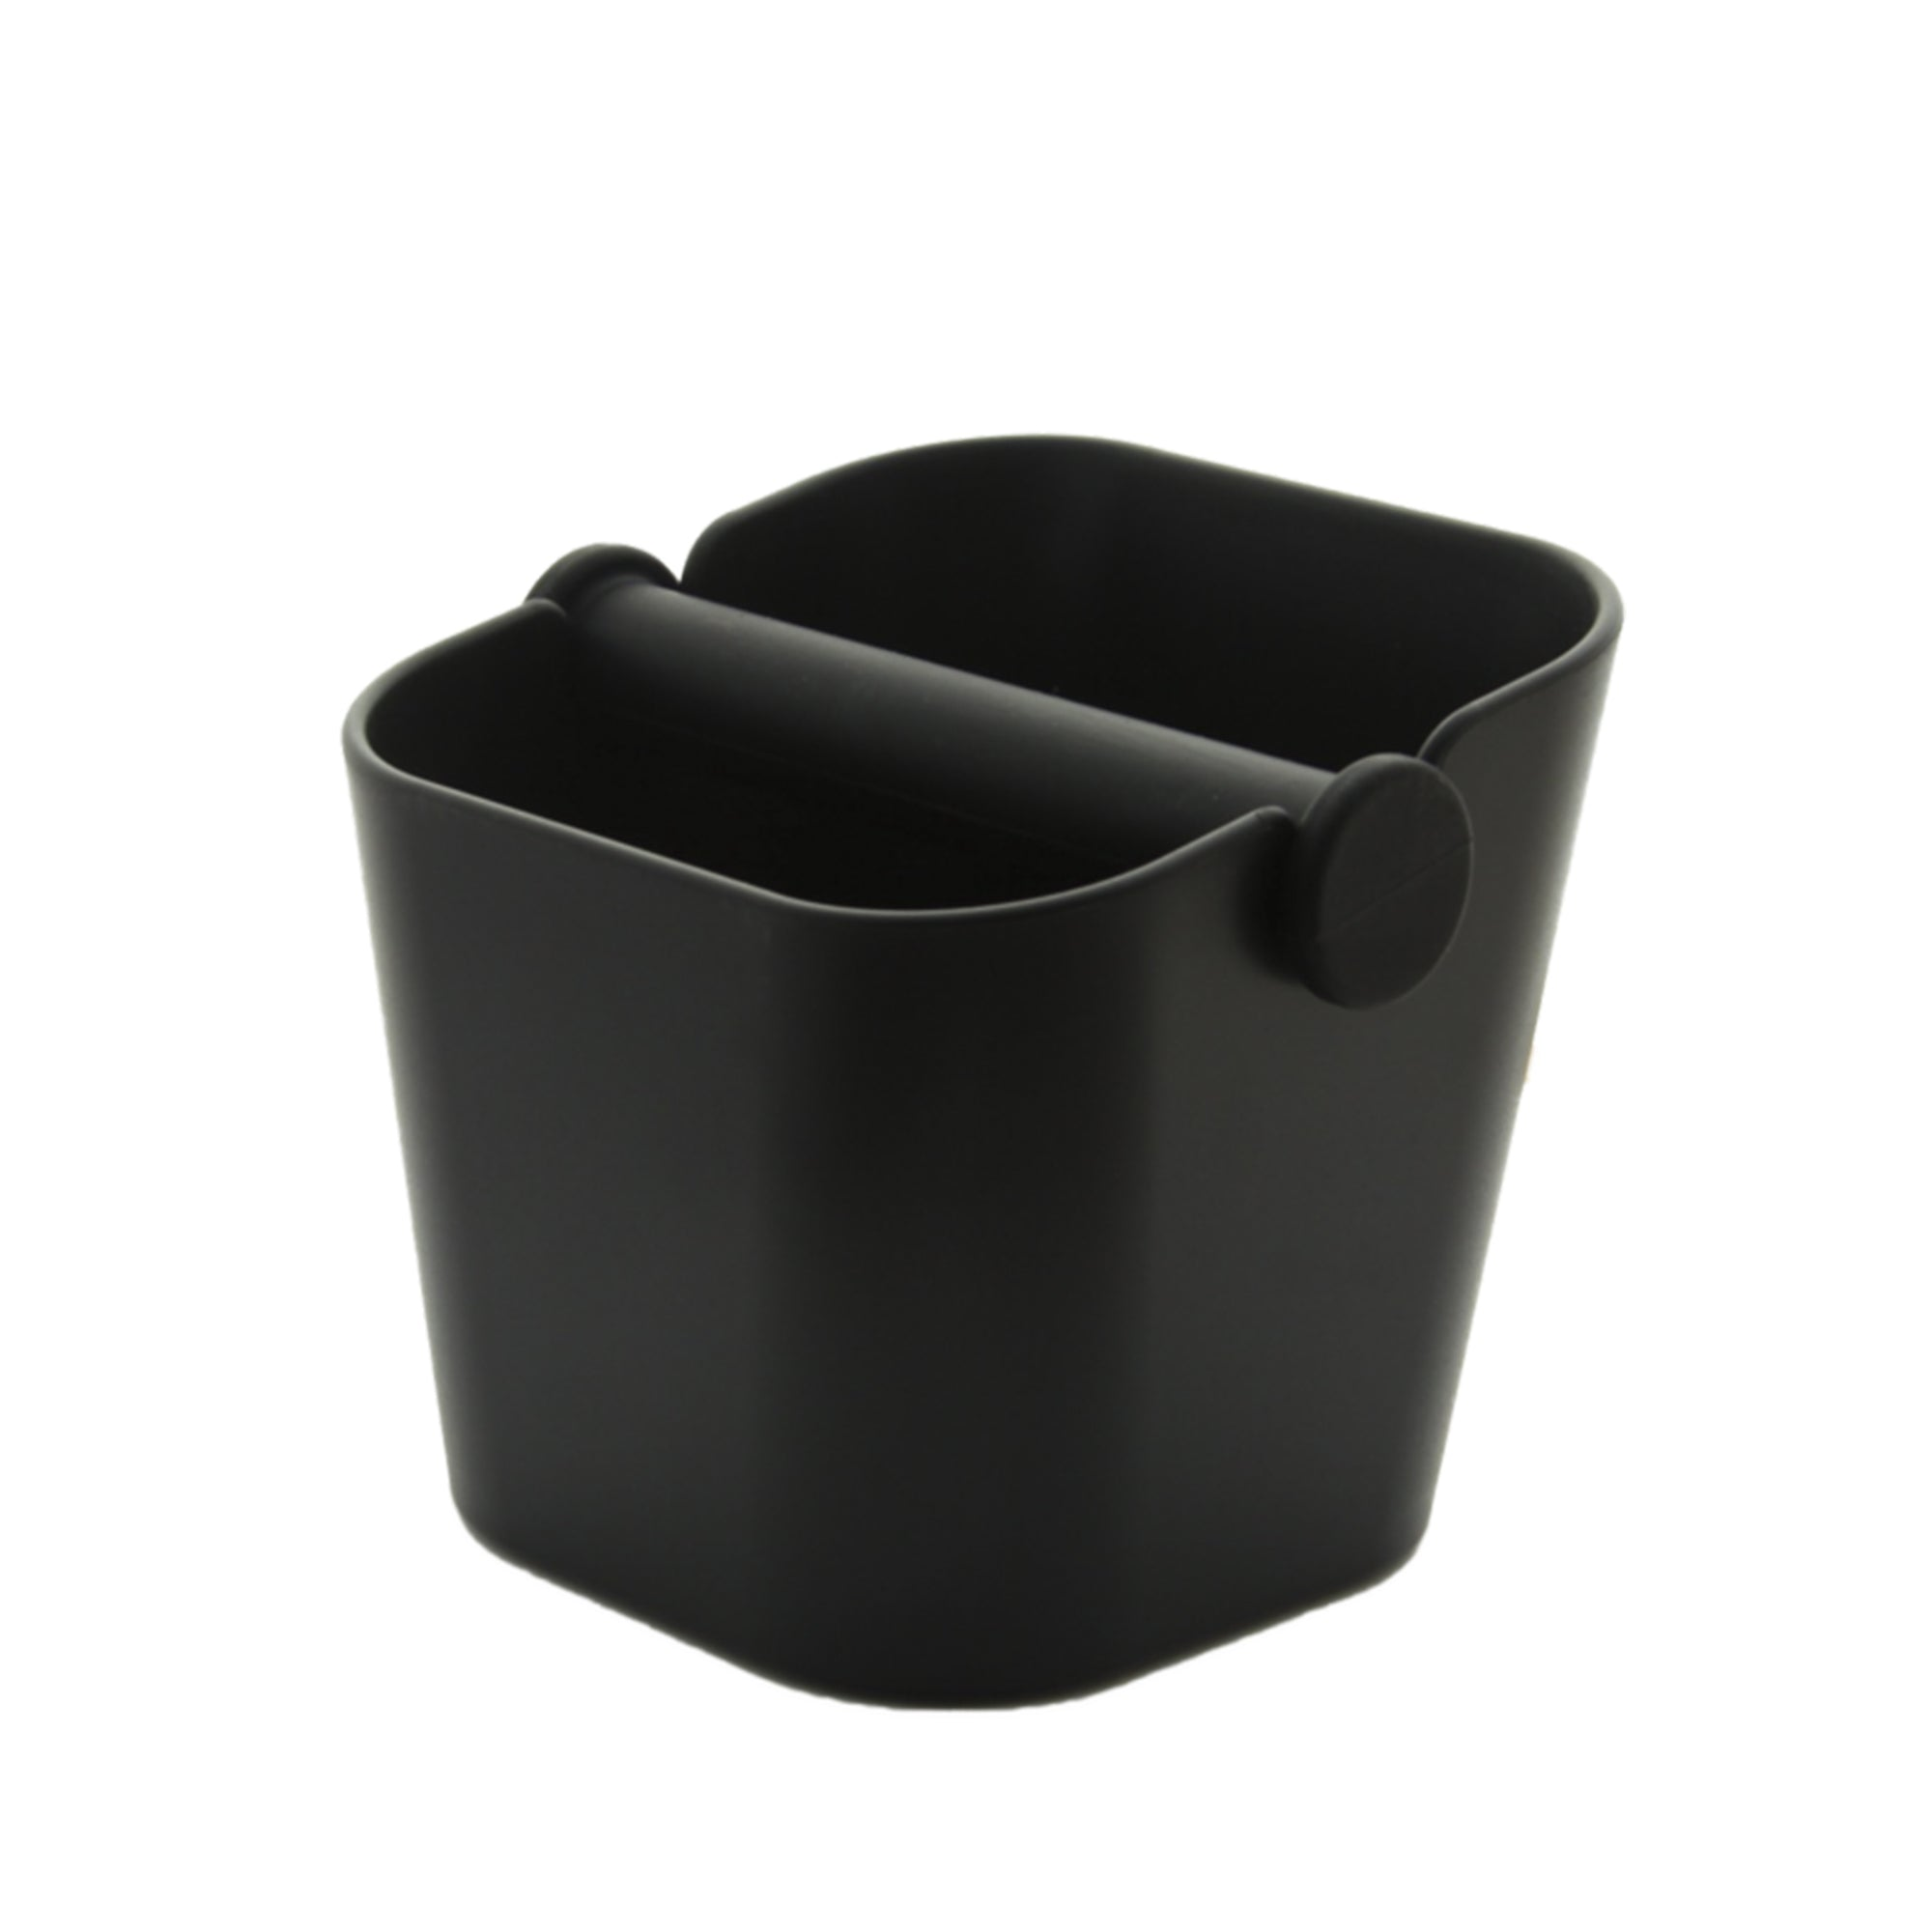 Knockbox Black - Tiamo - Espresso Gear